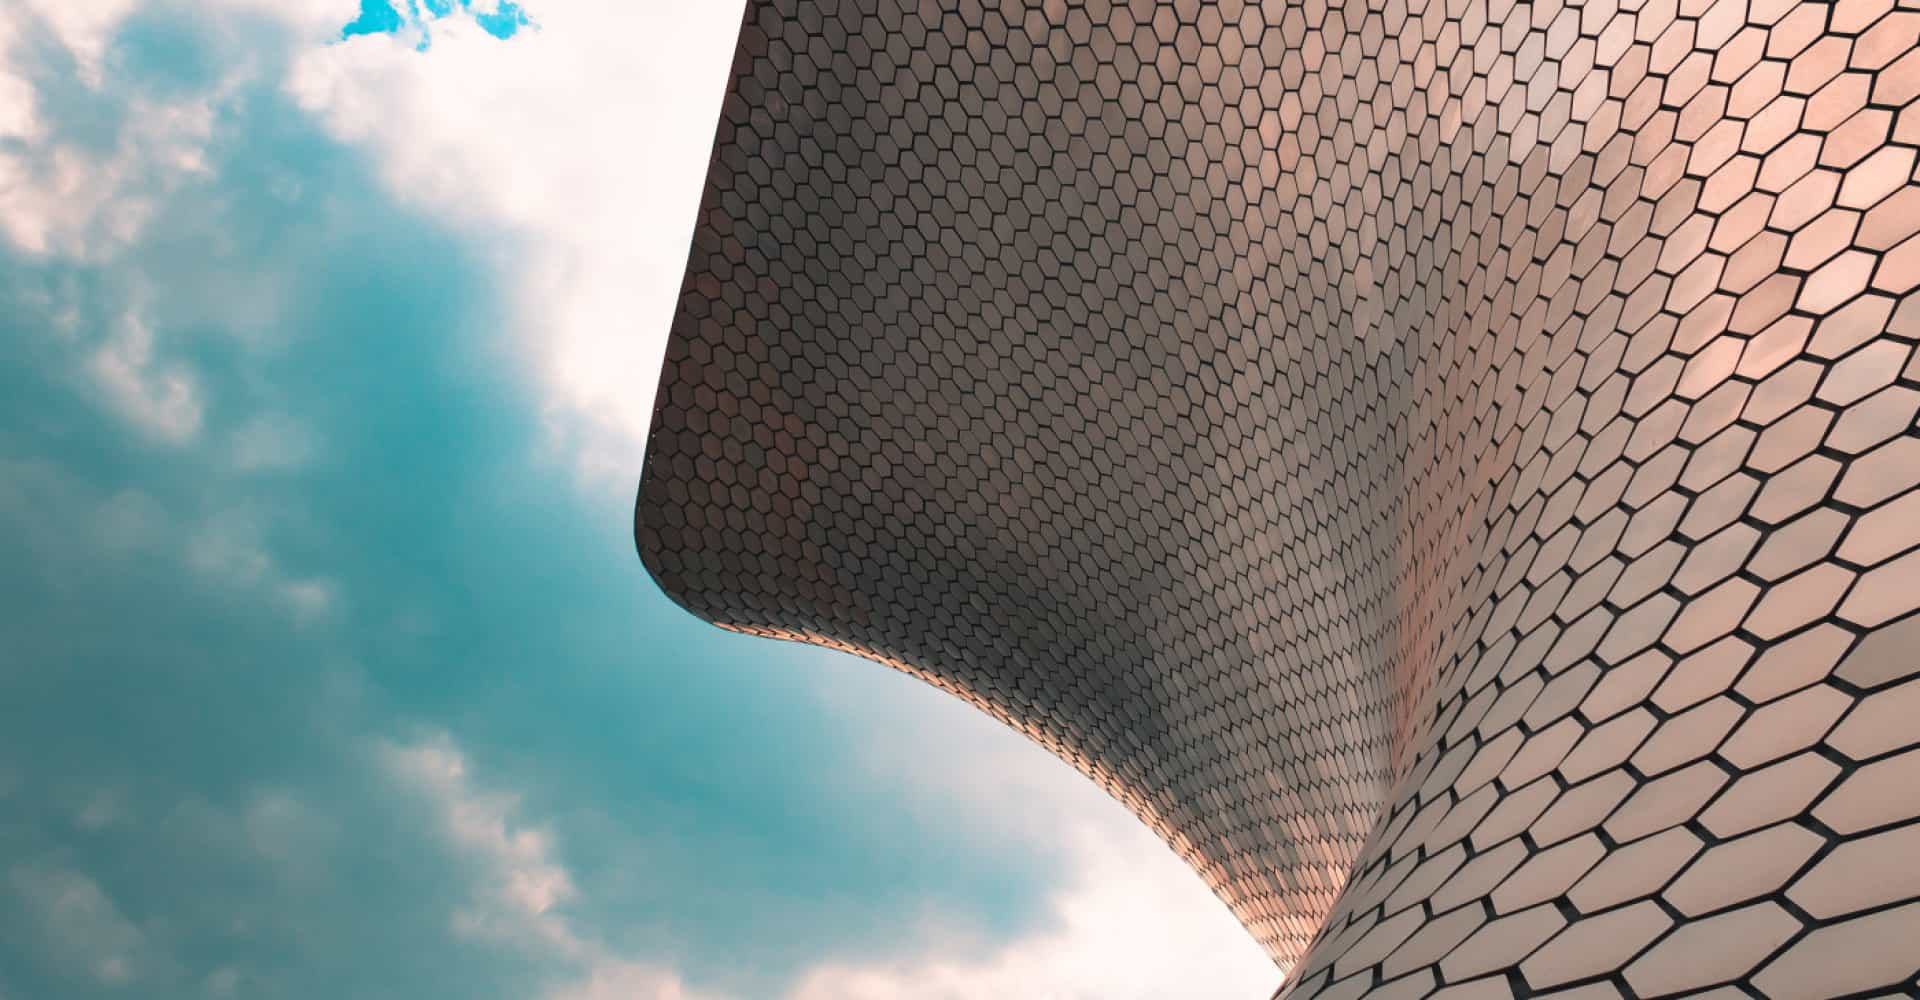 Incredibly satisfying images of modern architecture from around the world